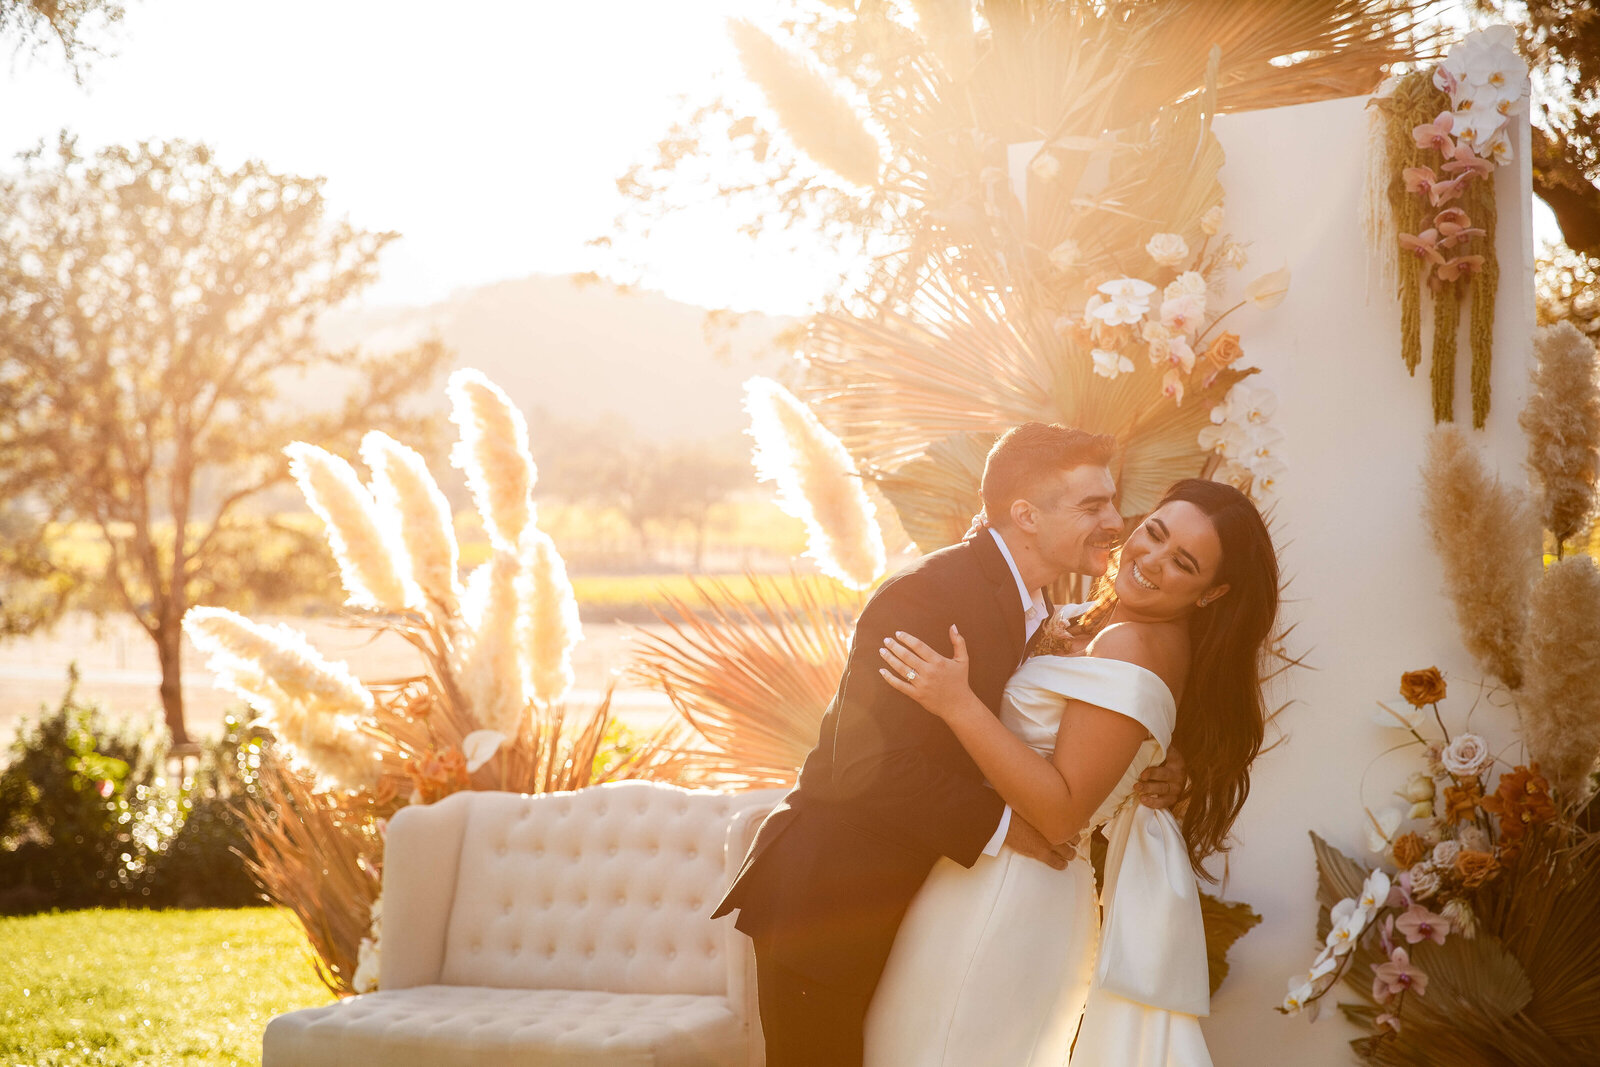 Sonoma-valley-beltane-ranch-california-wedding-events-by-gianna-somona-wedding-planner-9